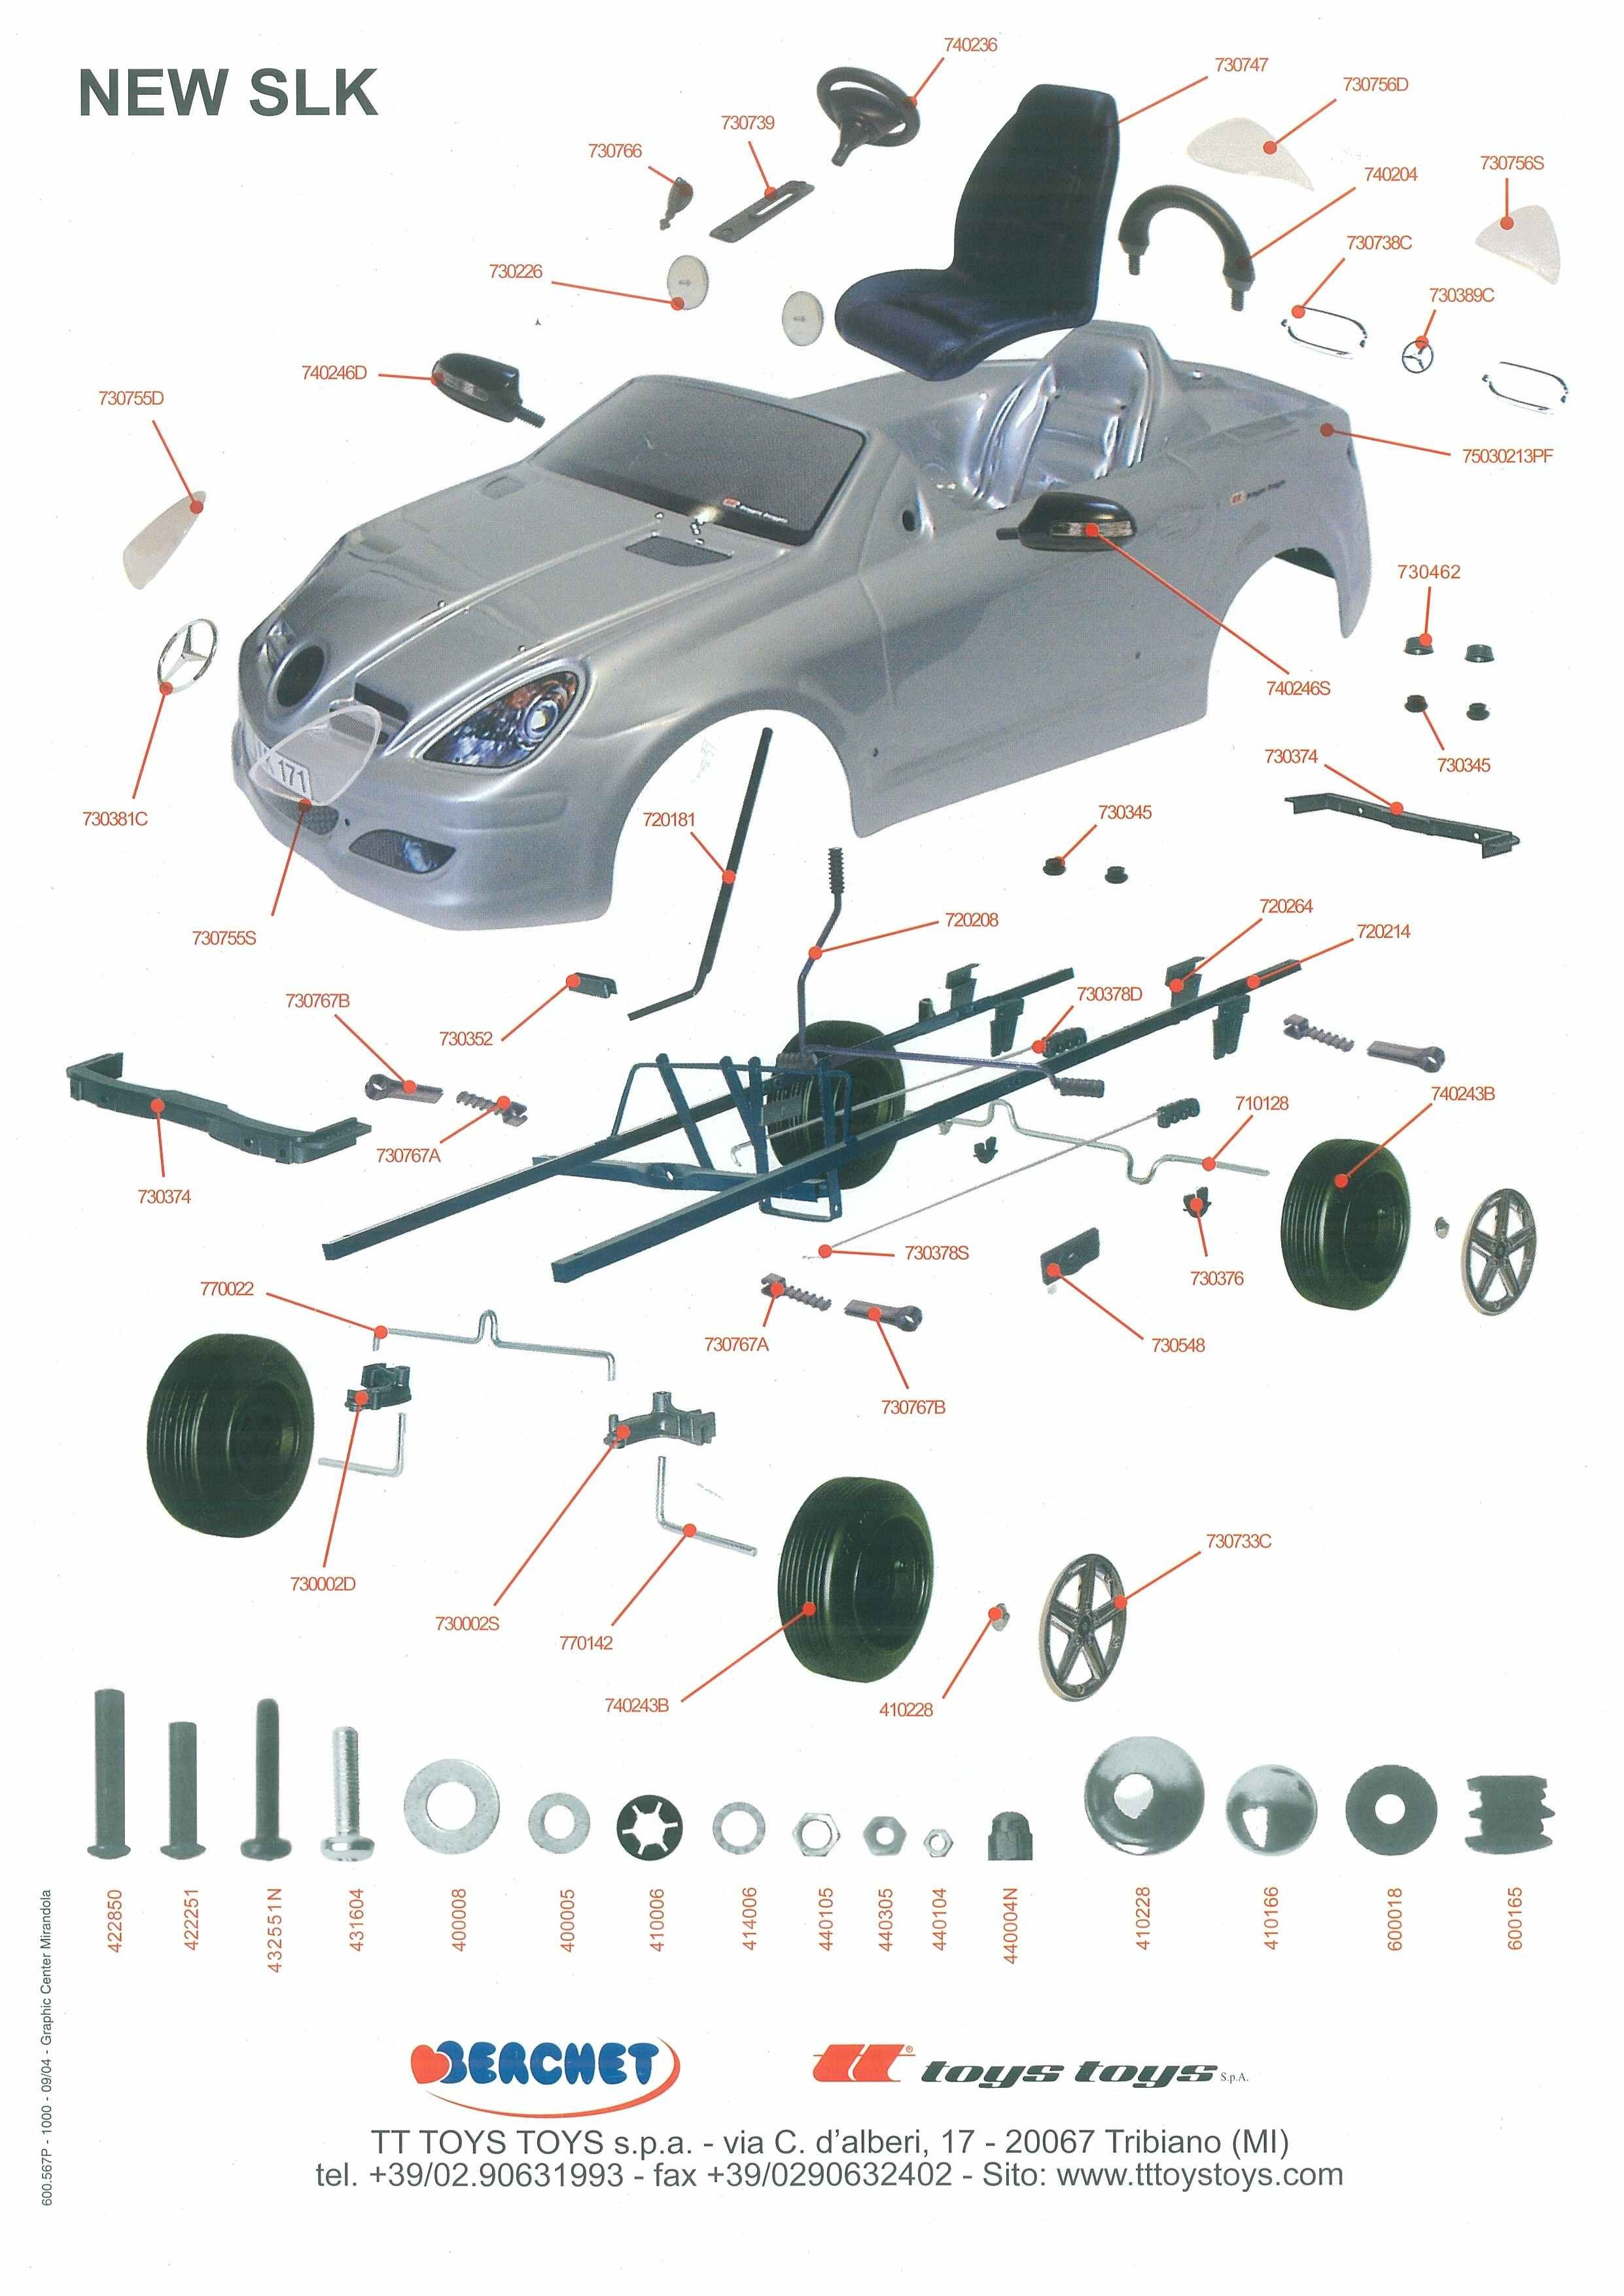 Basic Diagram Of Car Parts Basic Car Diagram Www Jebas Us Engine S and Ponent Wiring Of Basic Diagram Of Car Parts